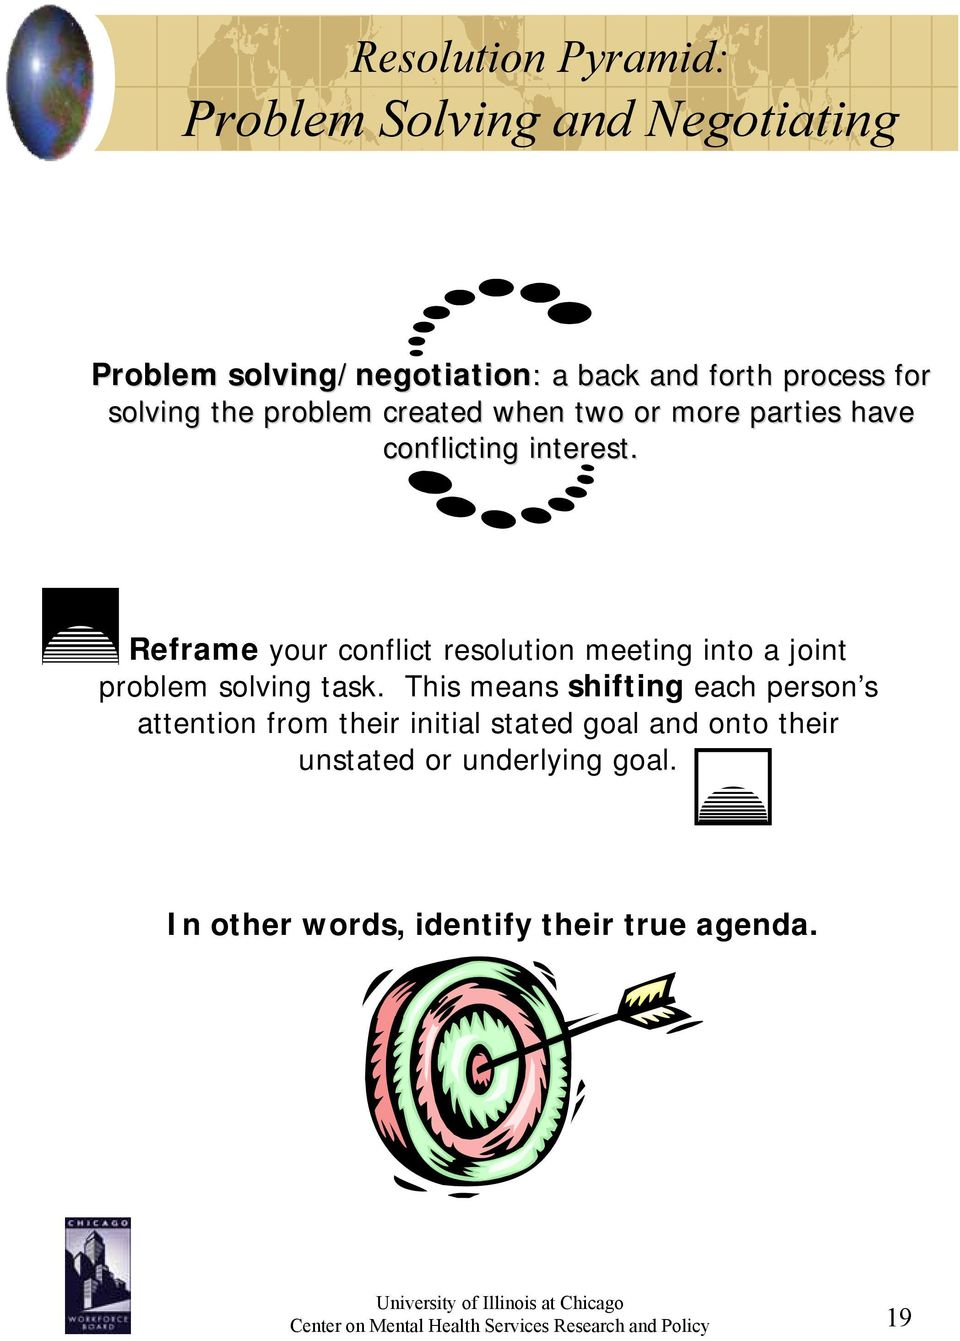 Reframe your conflict resolution meeting into a joint problem solving task.